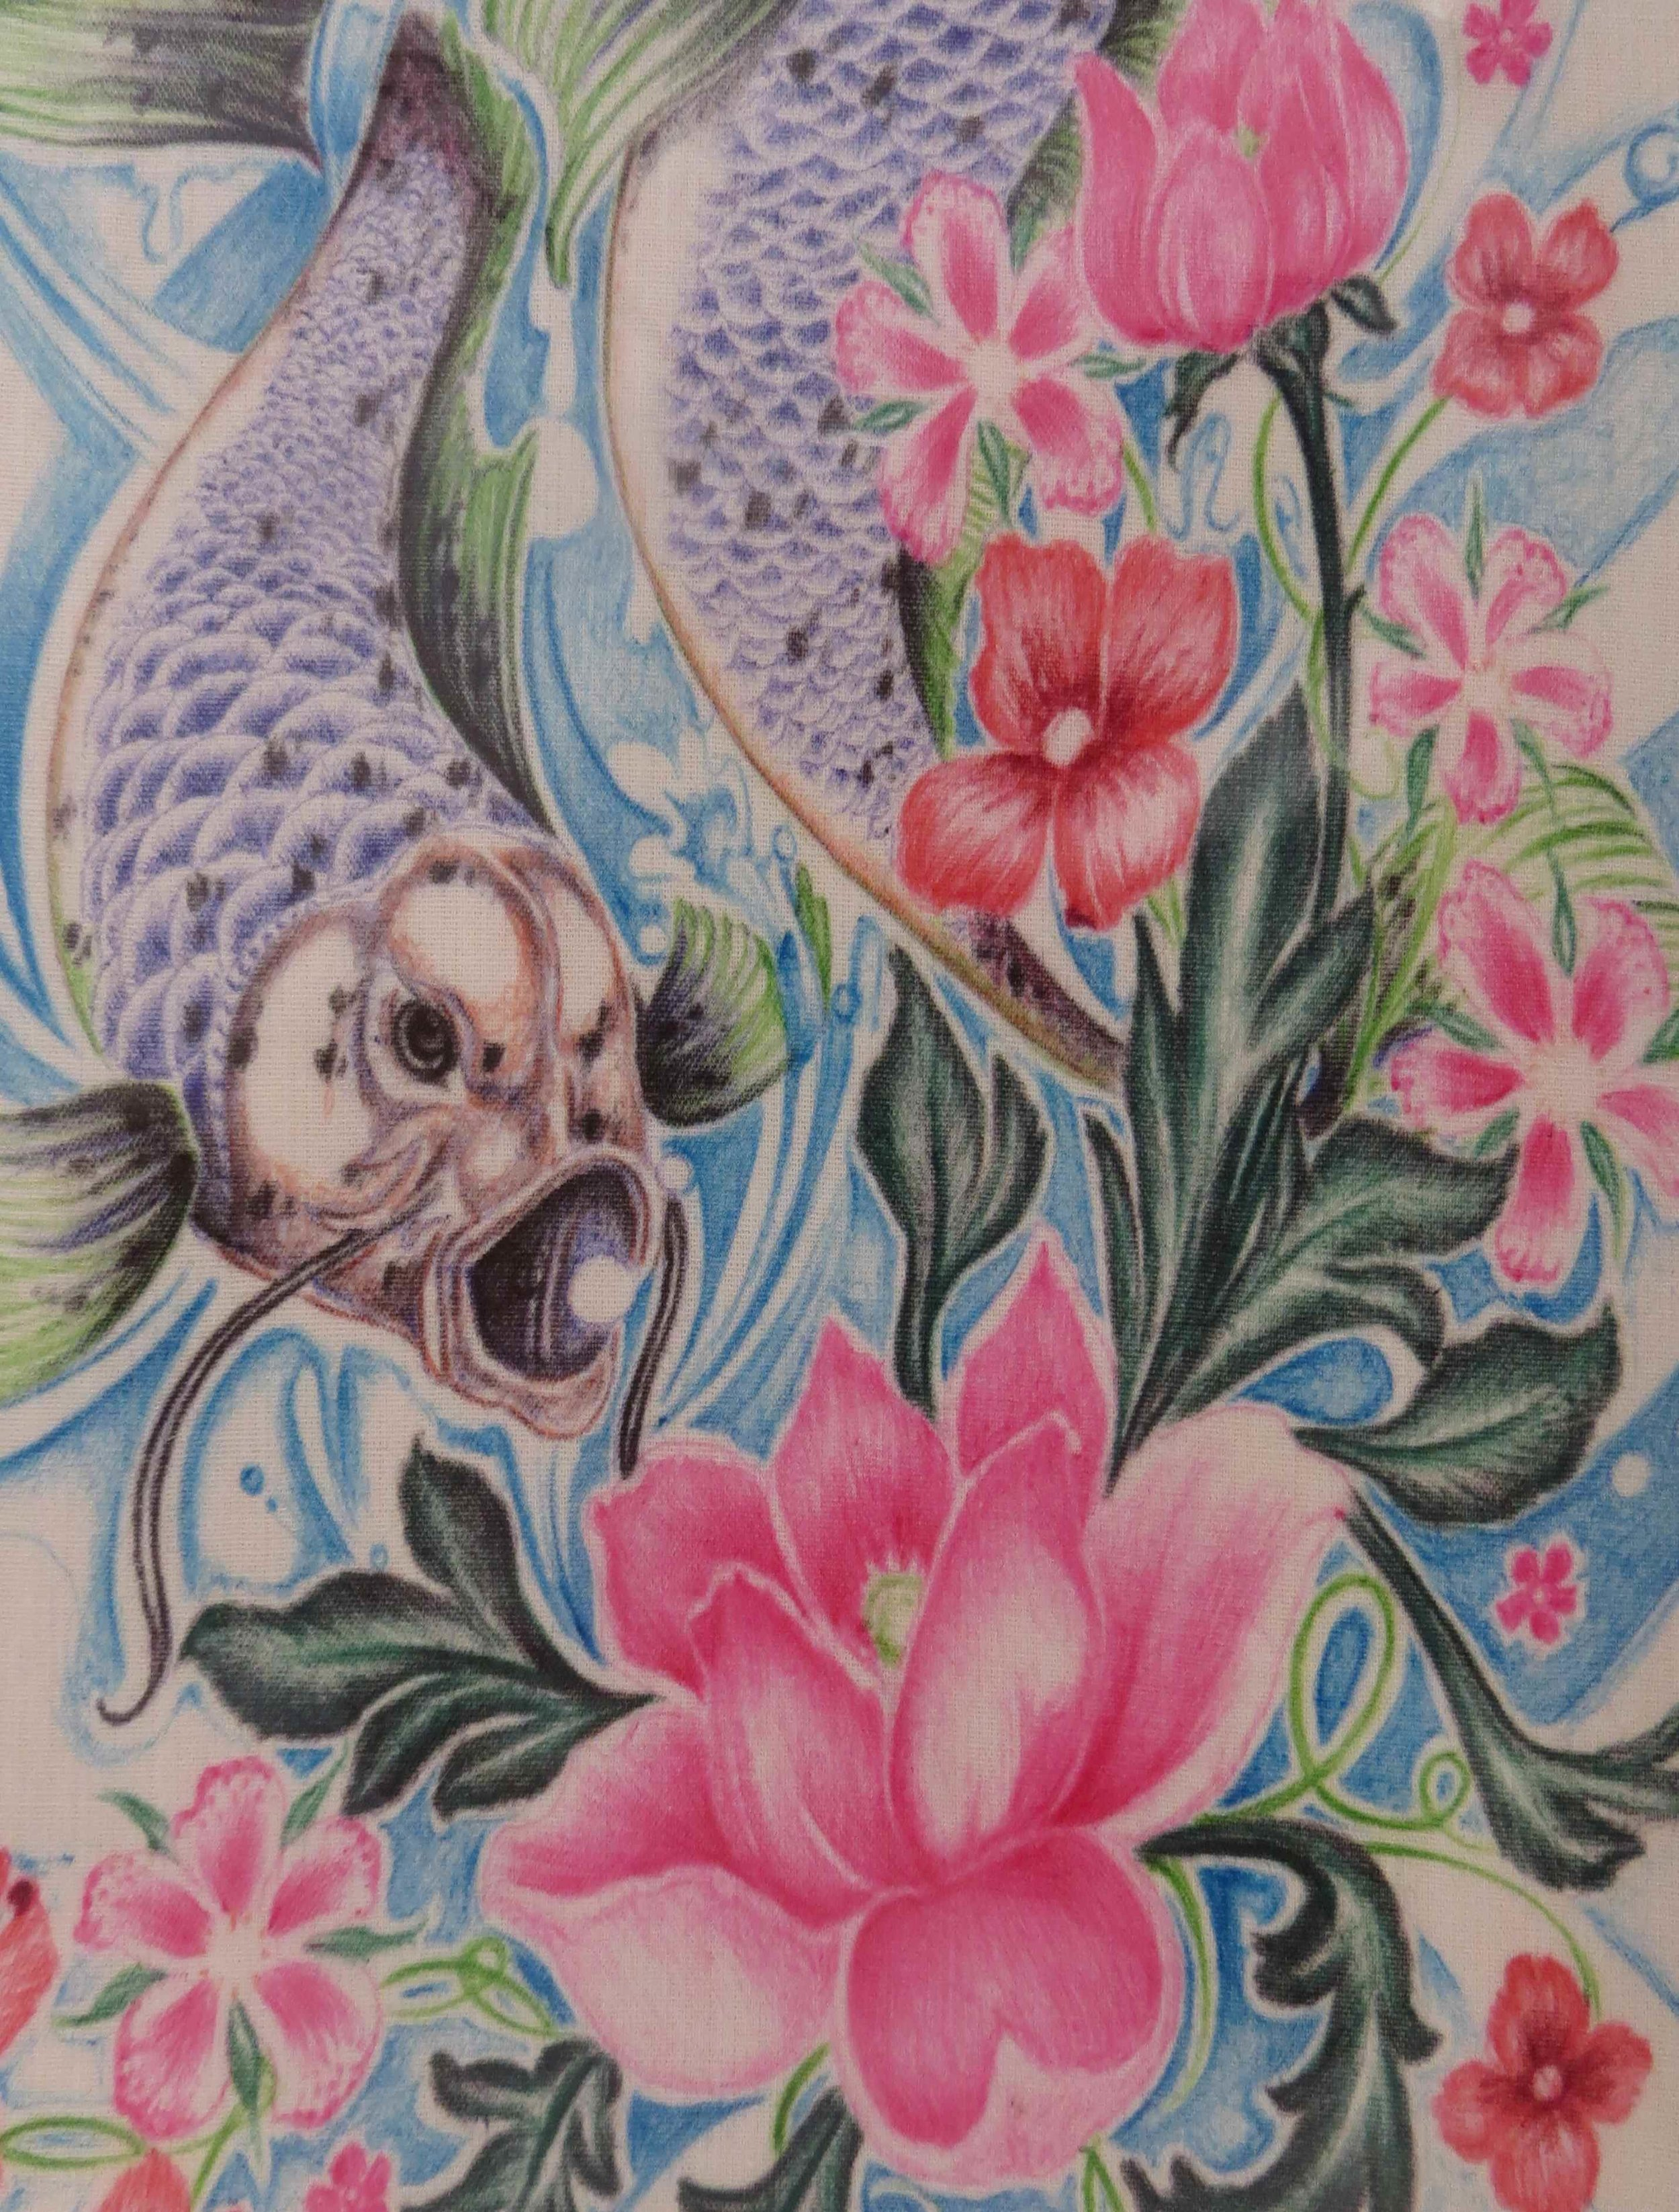 koi fish drawing-koi fish drawing-006 - Copy.jpg